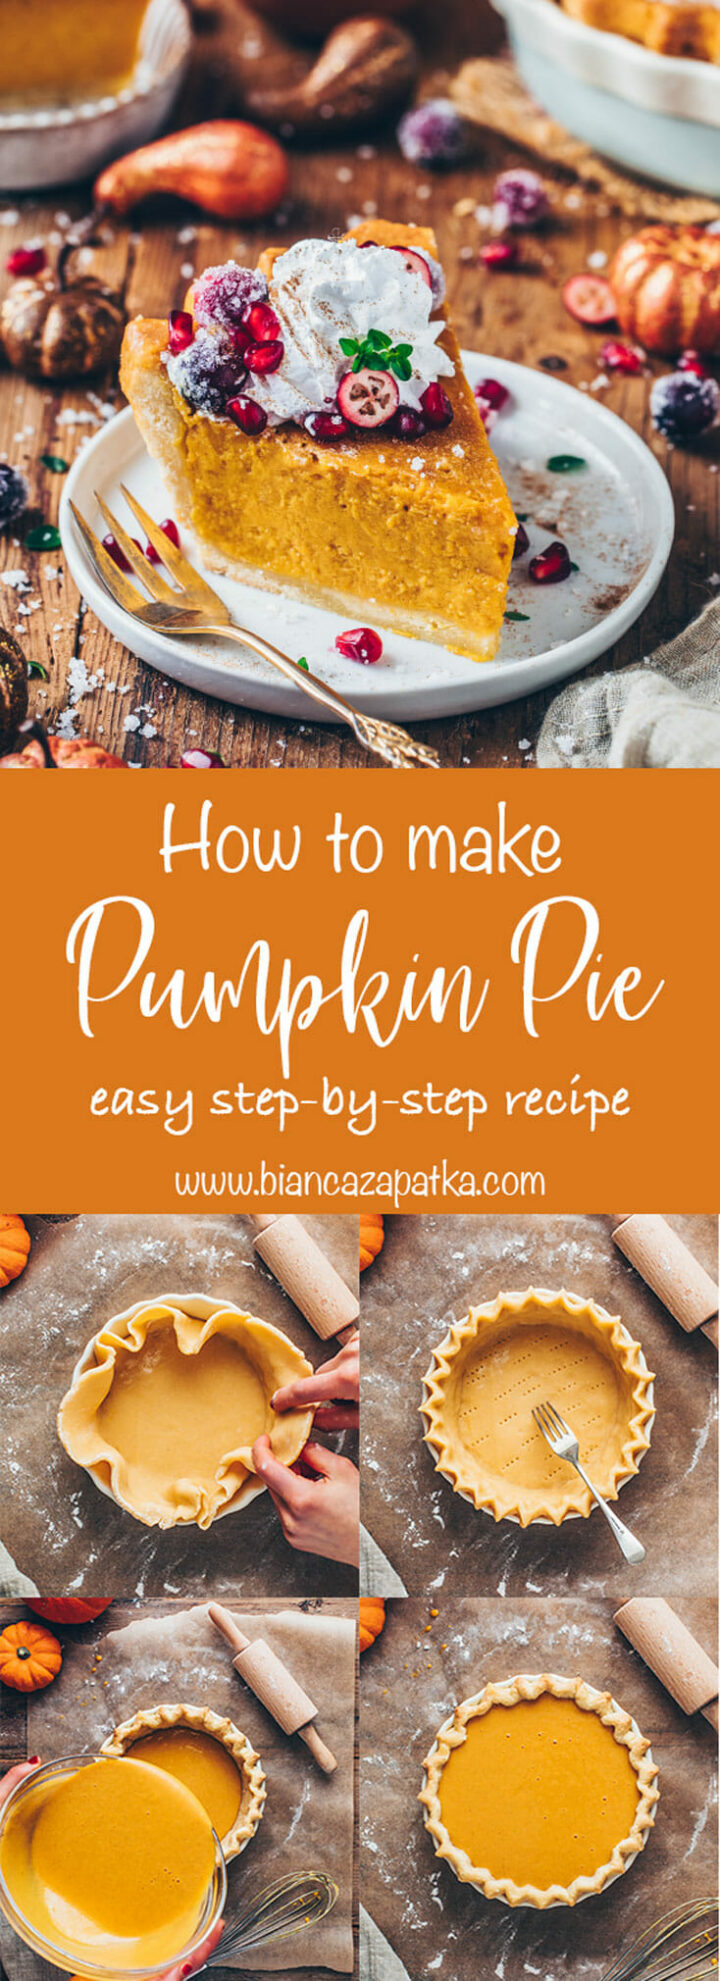 Pumpkin Pie Recipe with step-by-step photos how to make homemade pie crust